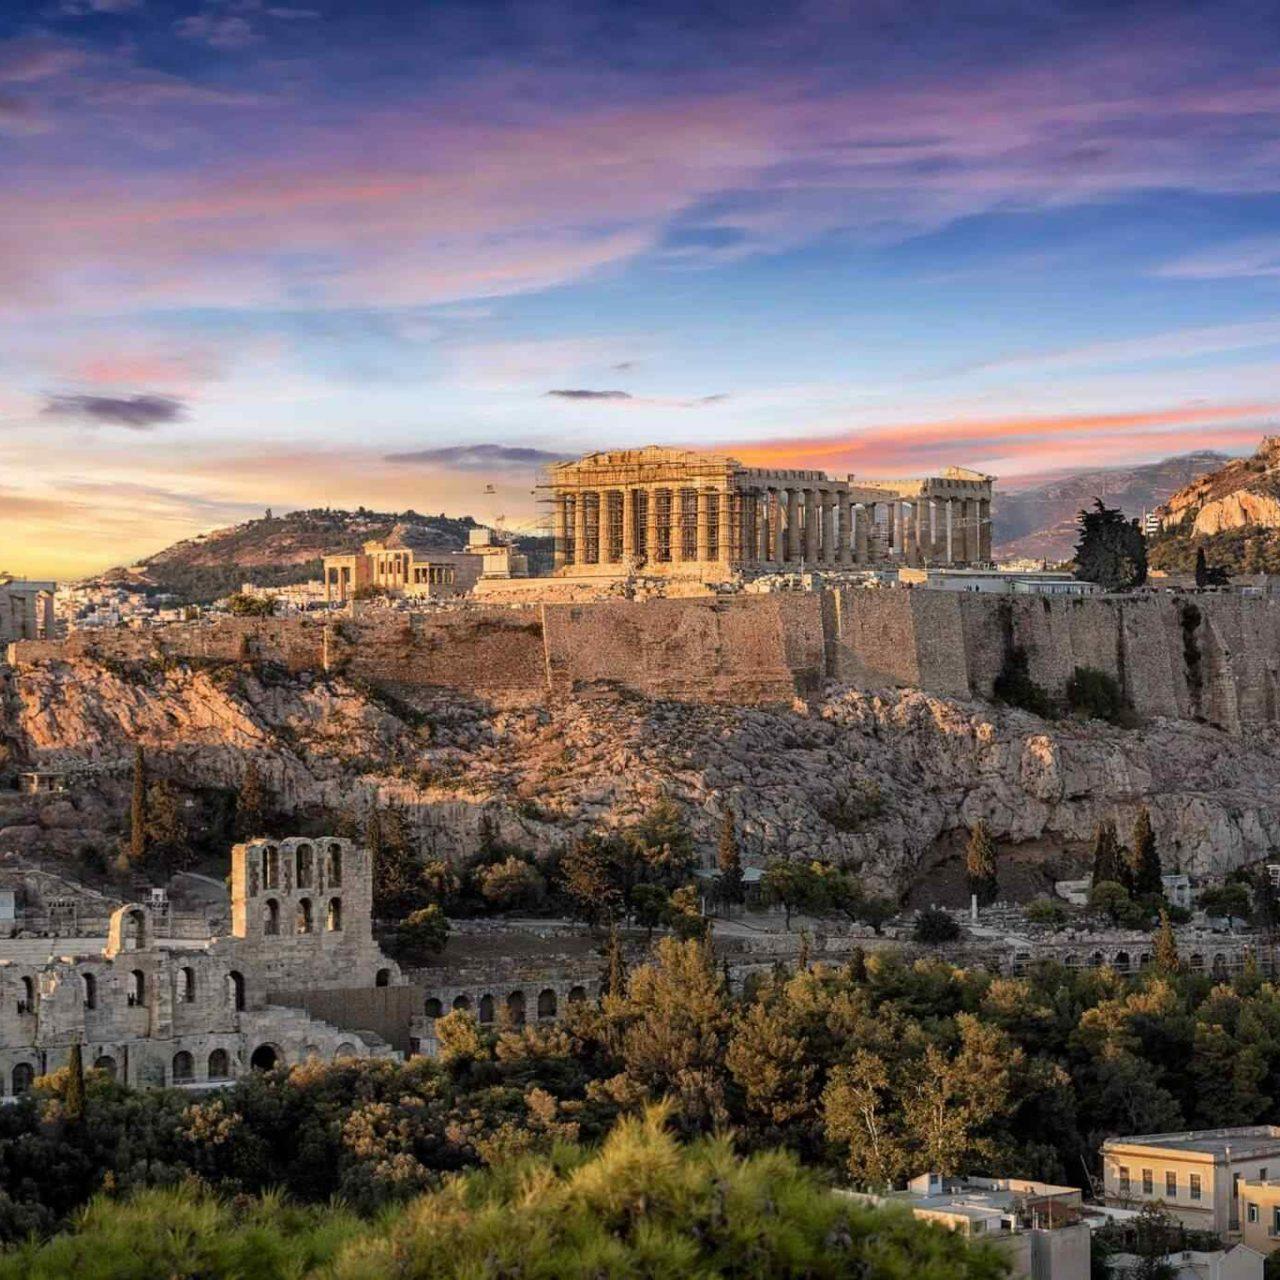 https://viveunbuenviaje.com/wp-content/uploads/2018/09/destination-athens-01-1280x1280.jpg